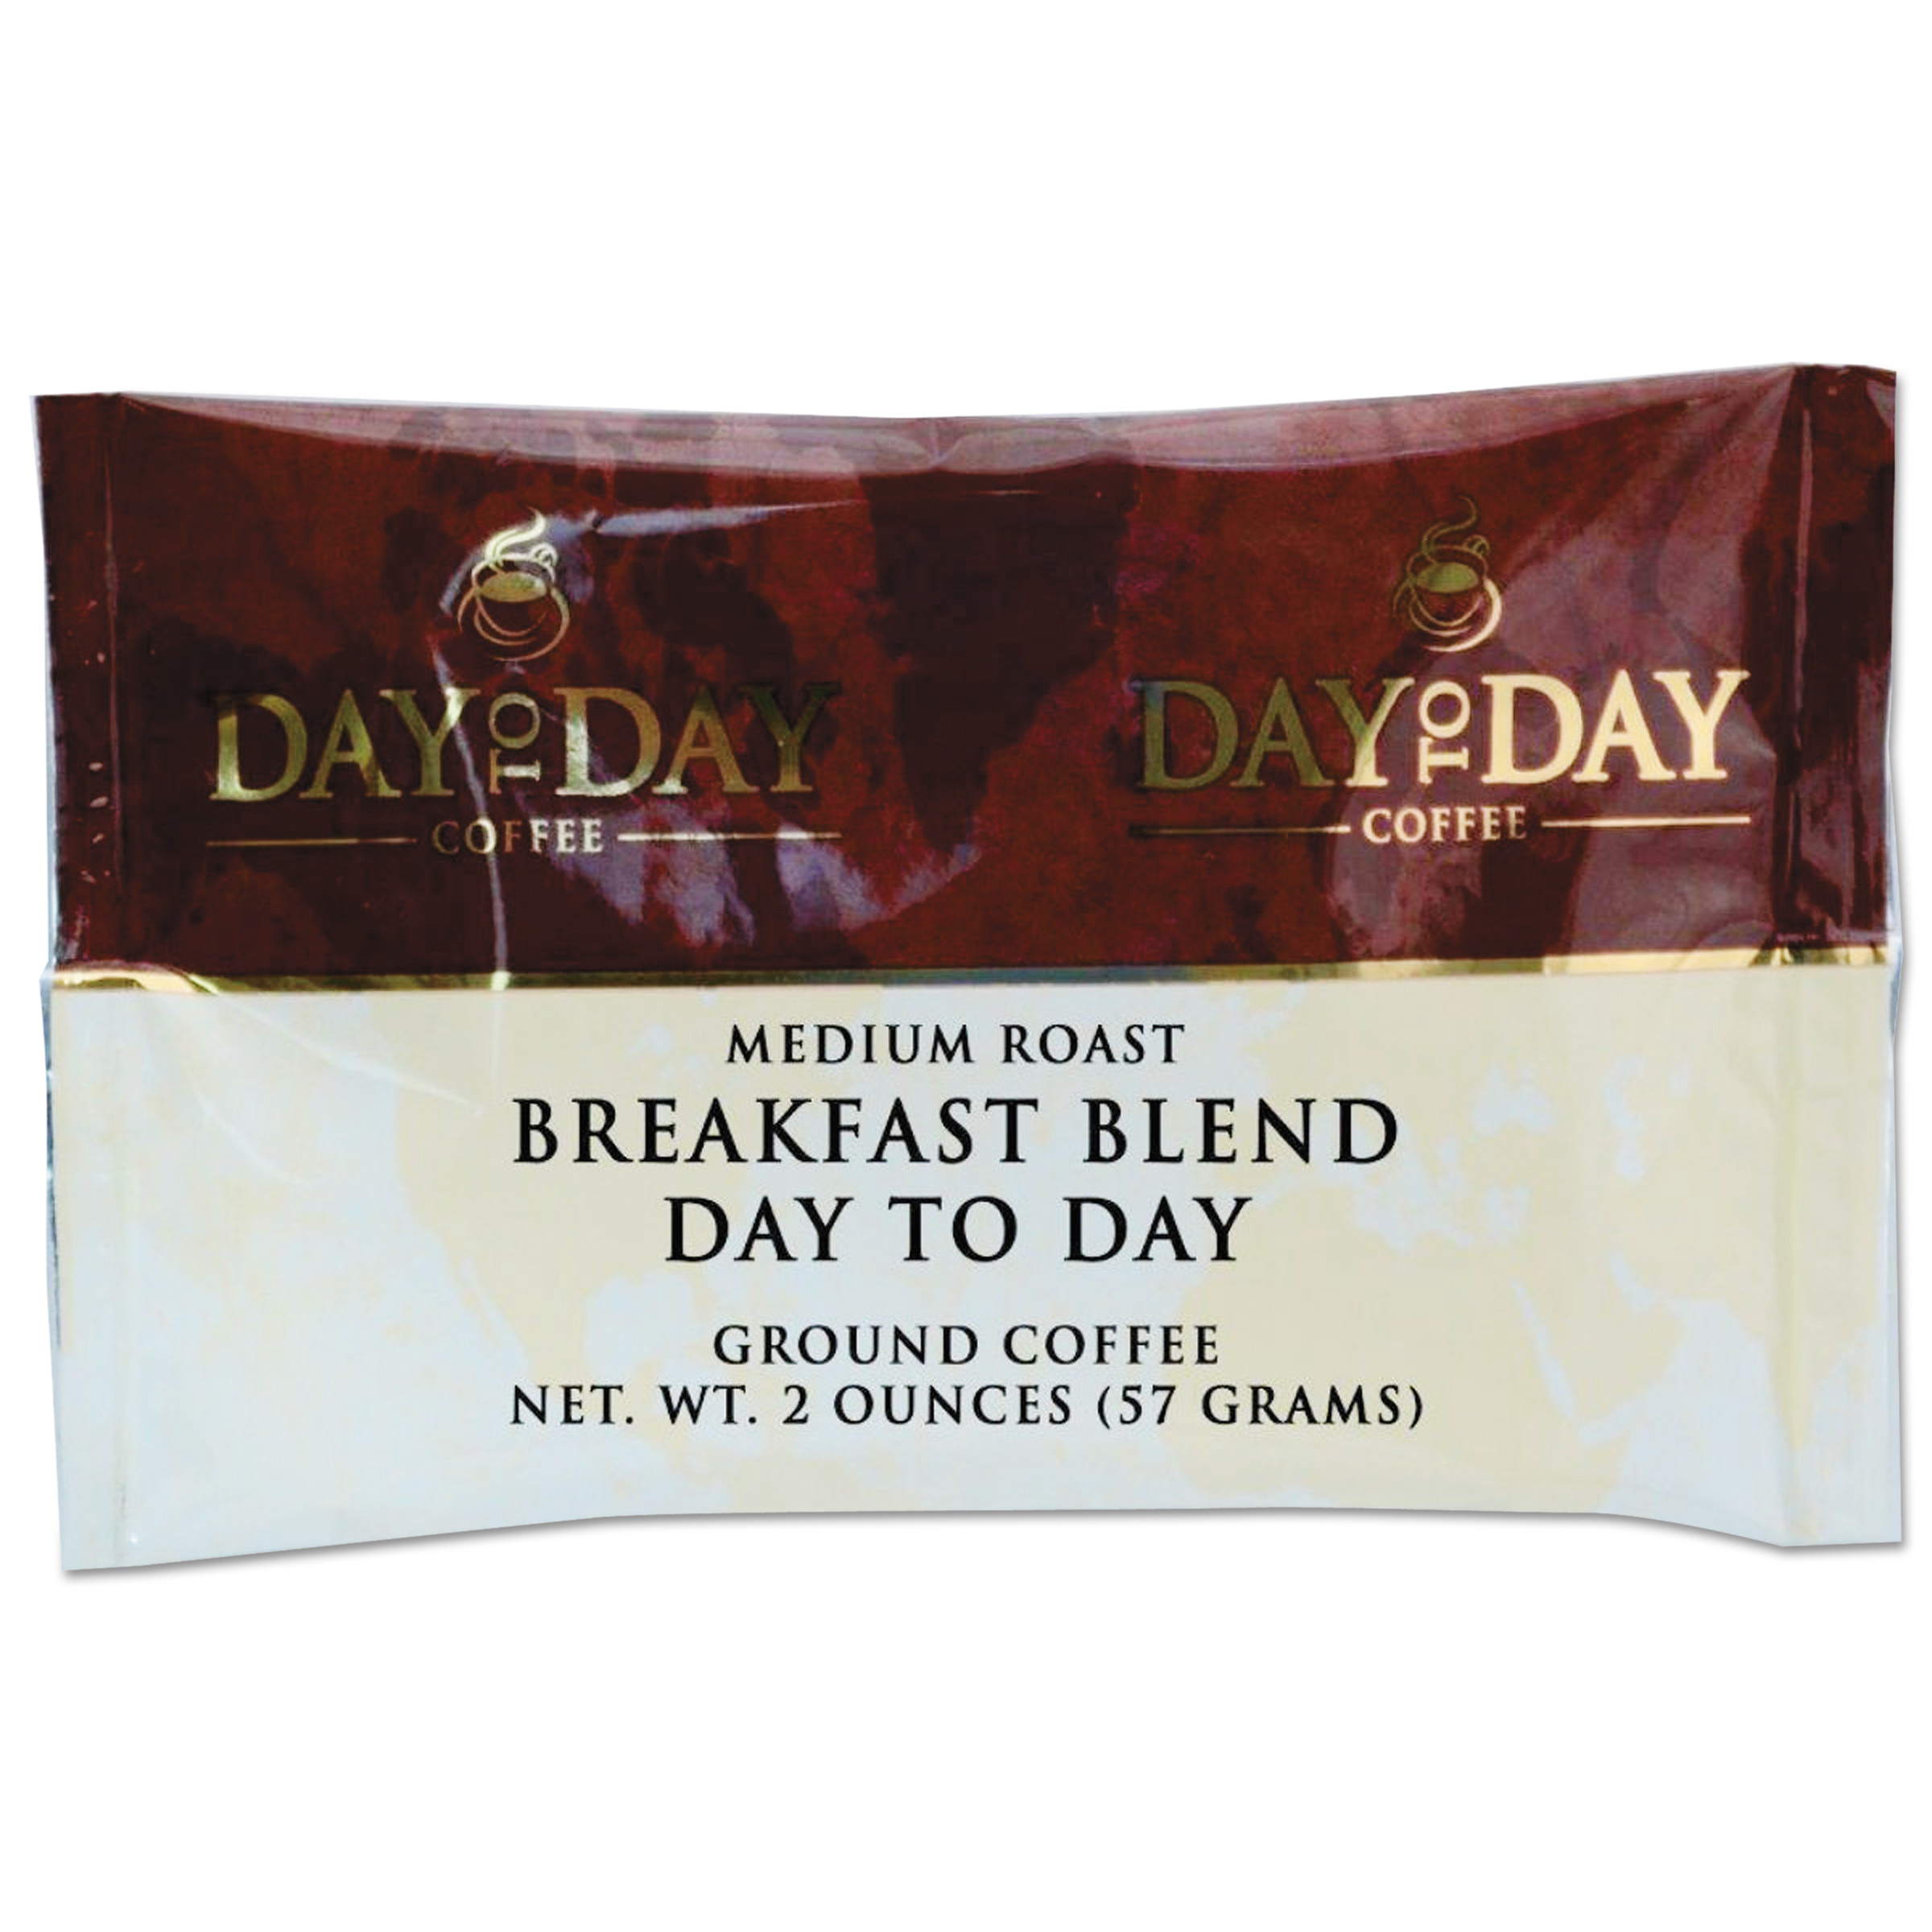 Day to Day Coffee 100% Pure Coffee, Breakfast Blend, 2 oz Pack, 42/Carton